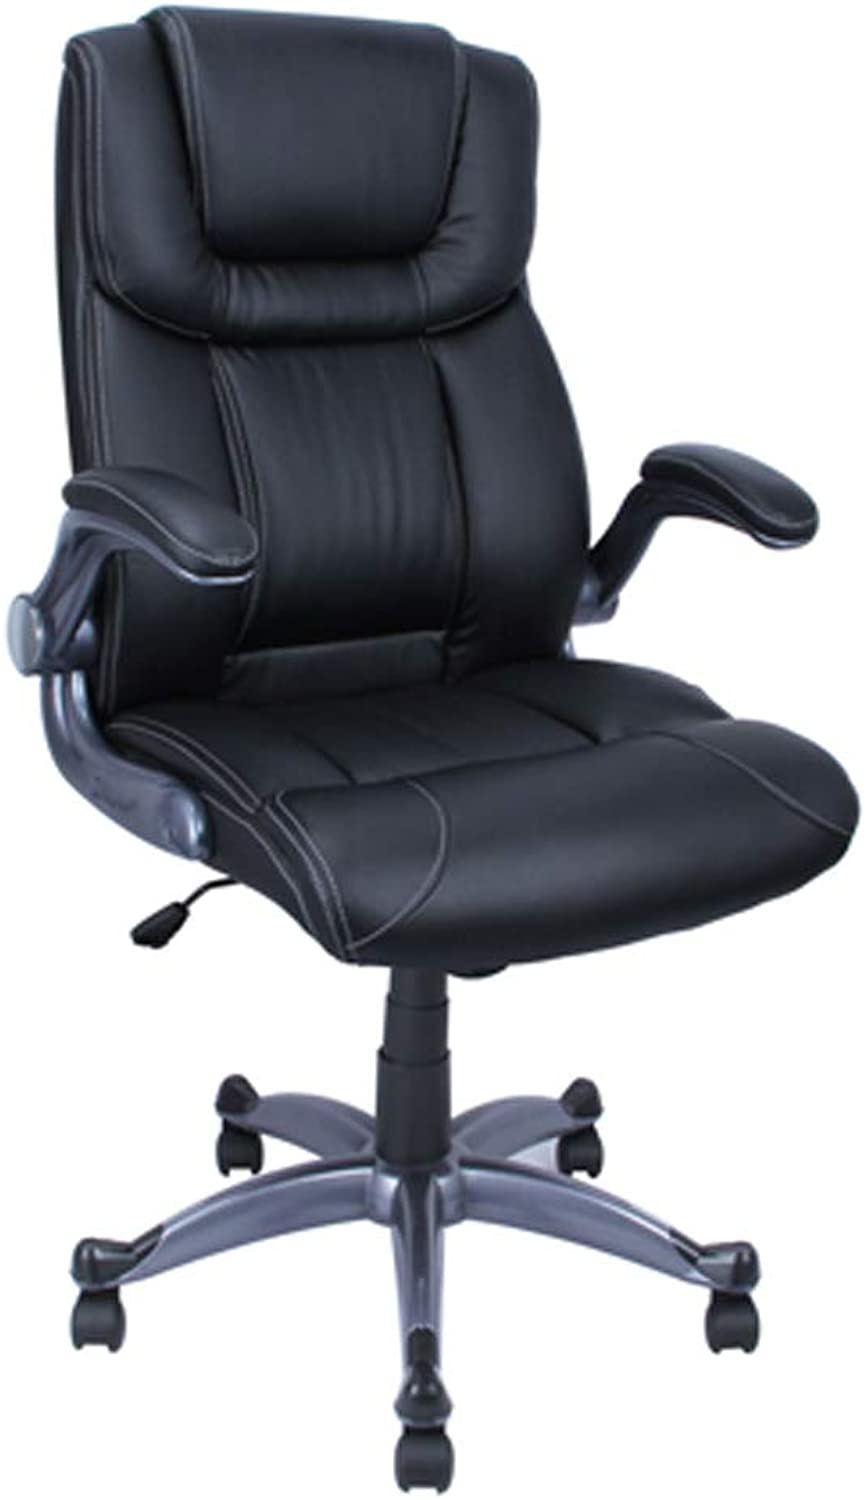 ALEKO ALC2380BL High Back Office Chair Ergonomic Computer Desk Chair Black PU Leather